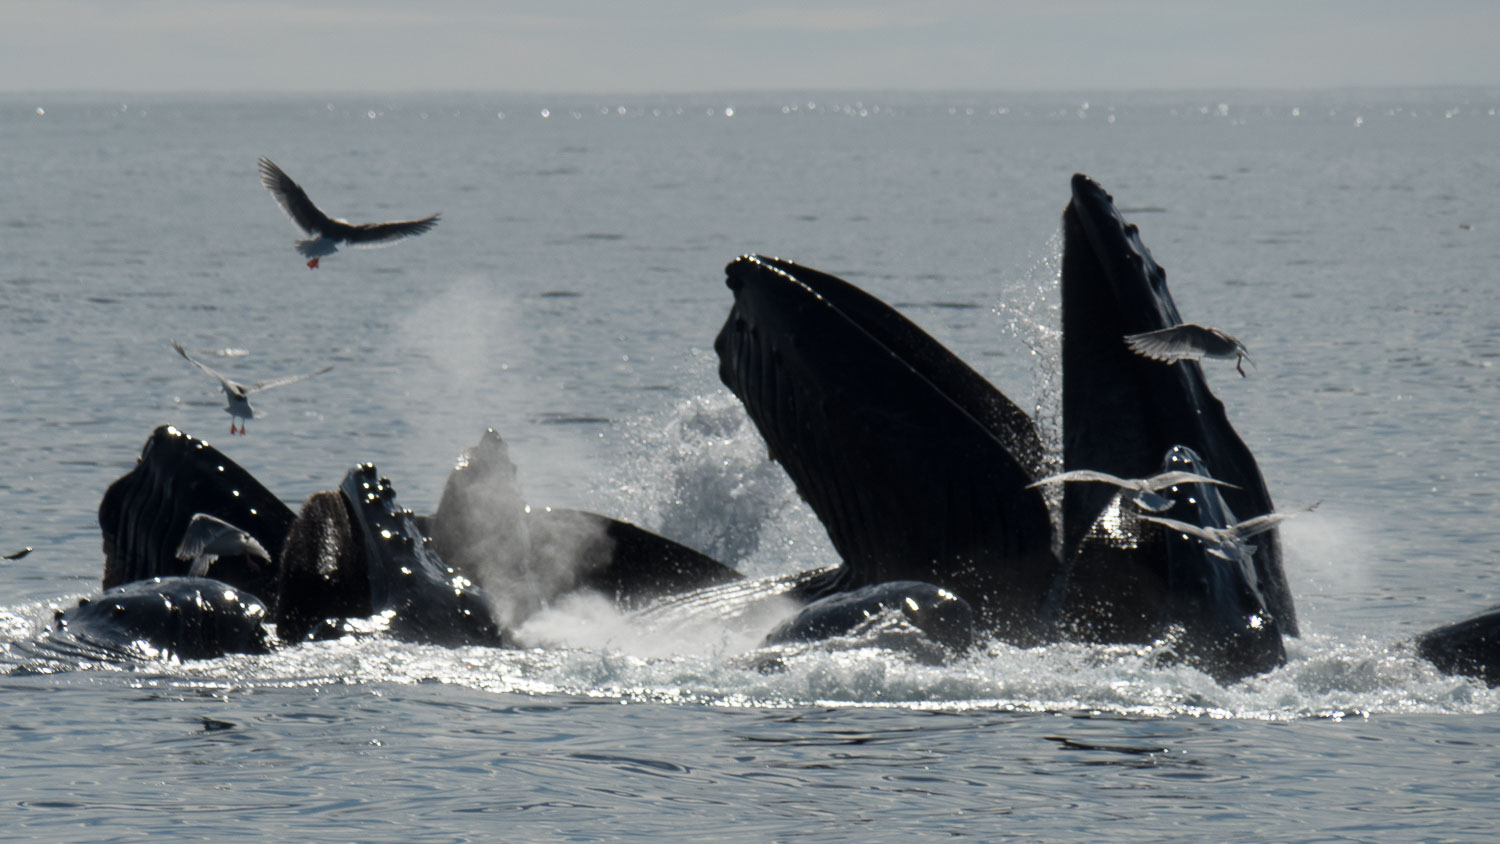 humpback whales - Pros and Cons of Using Micro Four-Thirds Cameras for Wildlife Photography